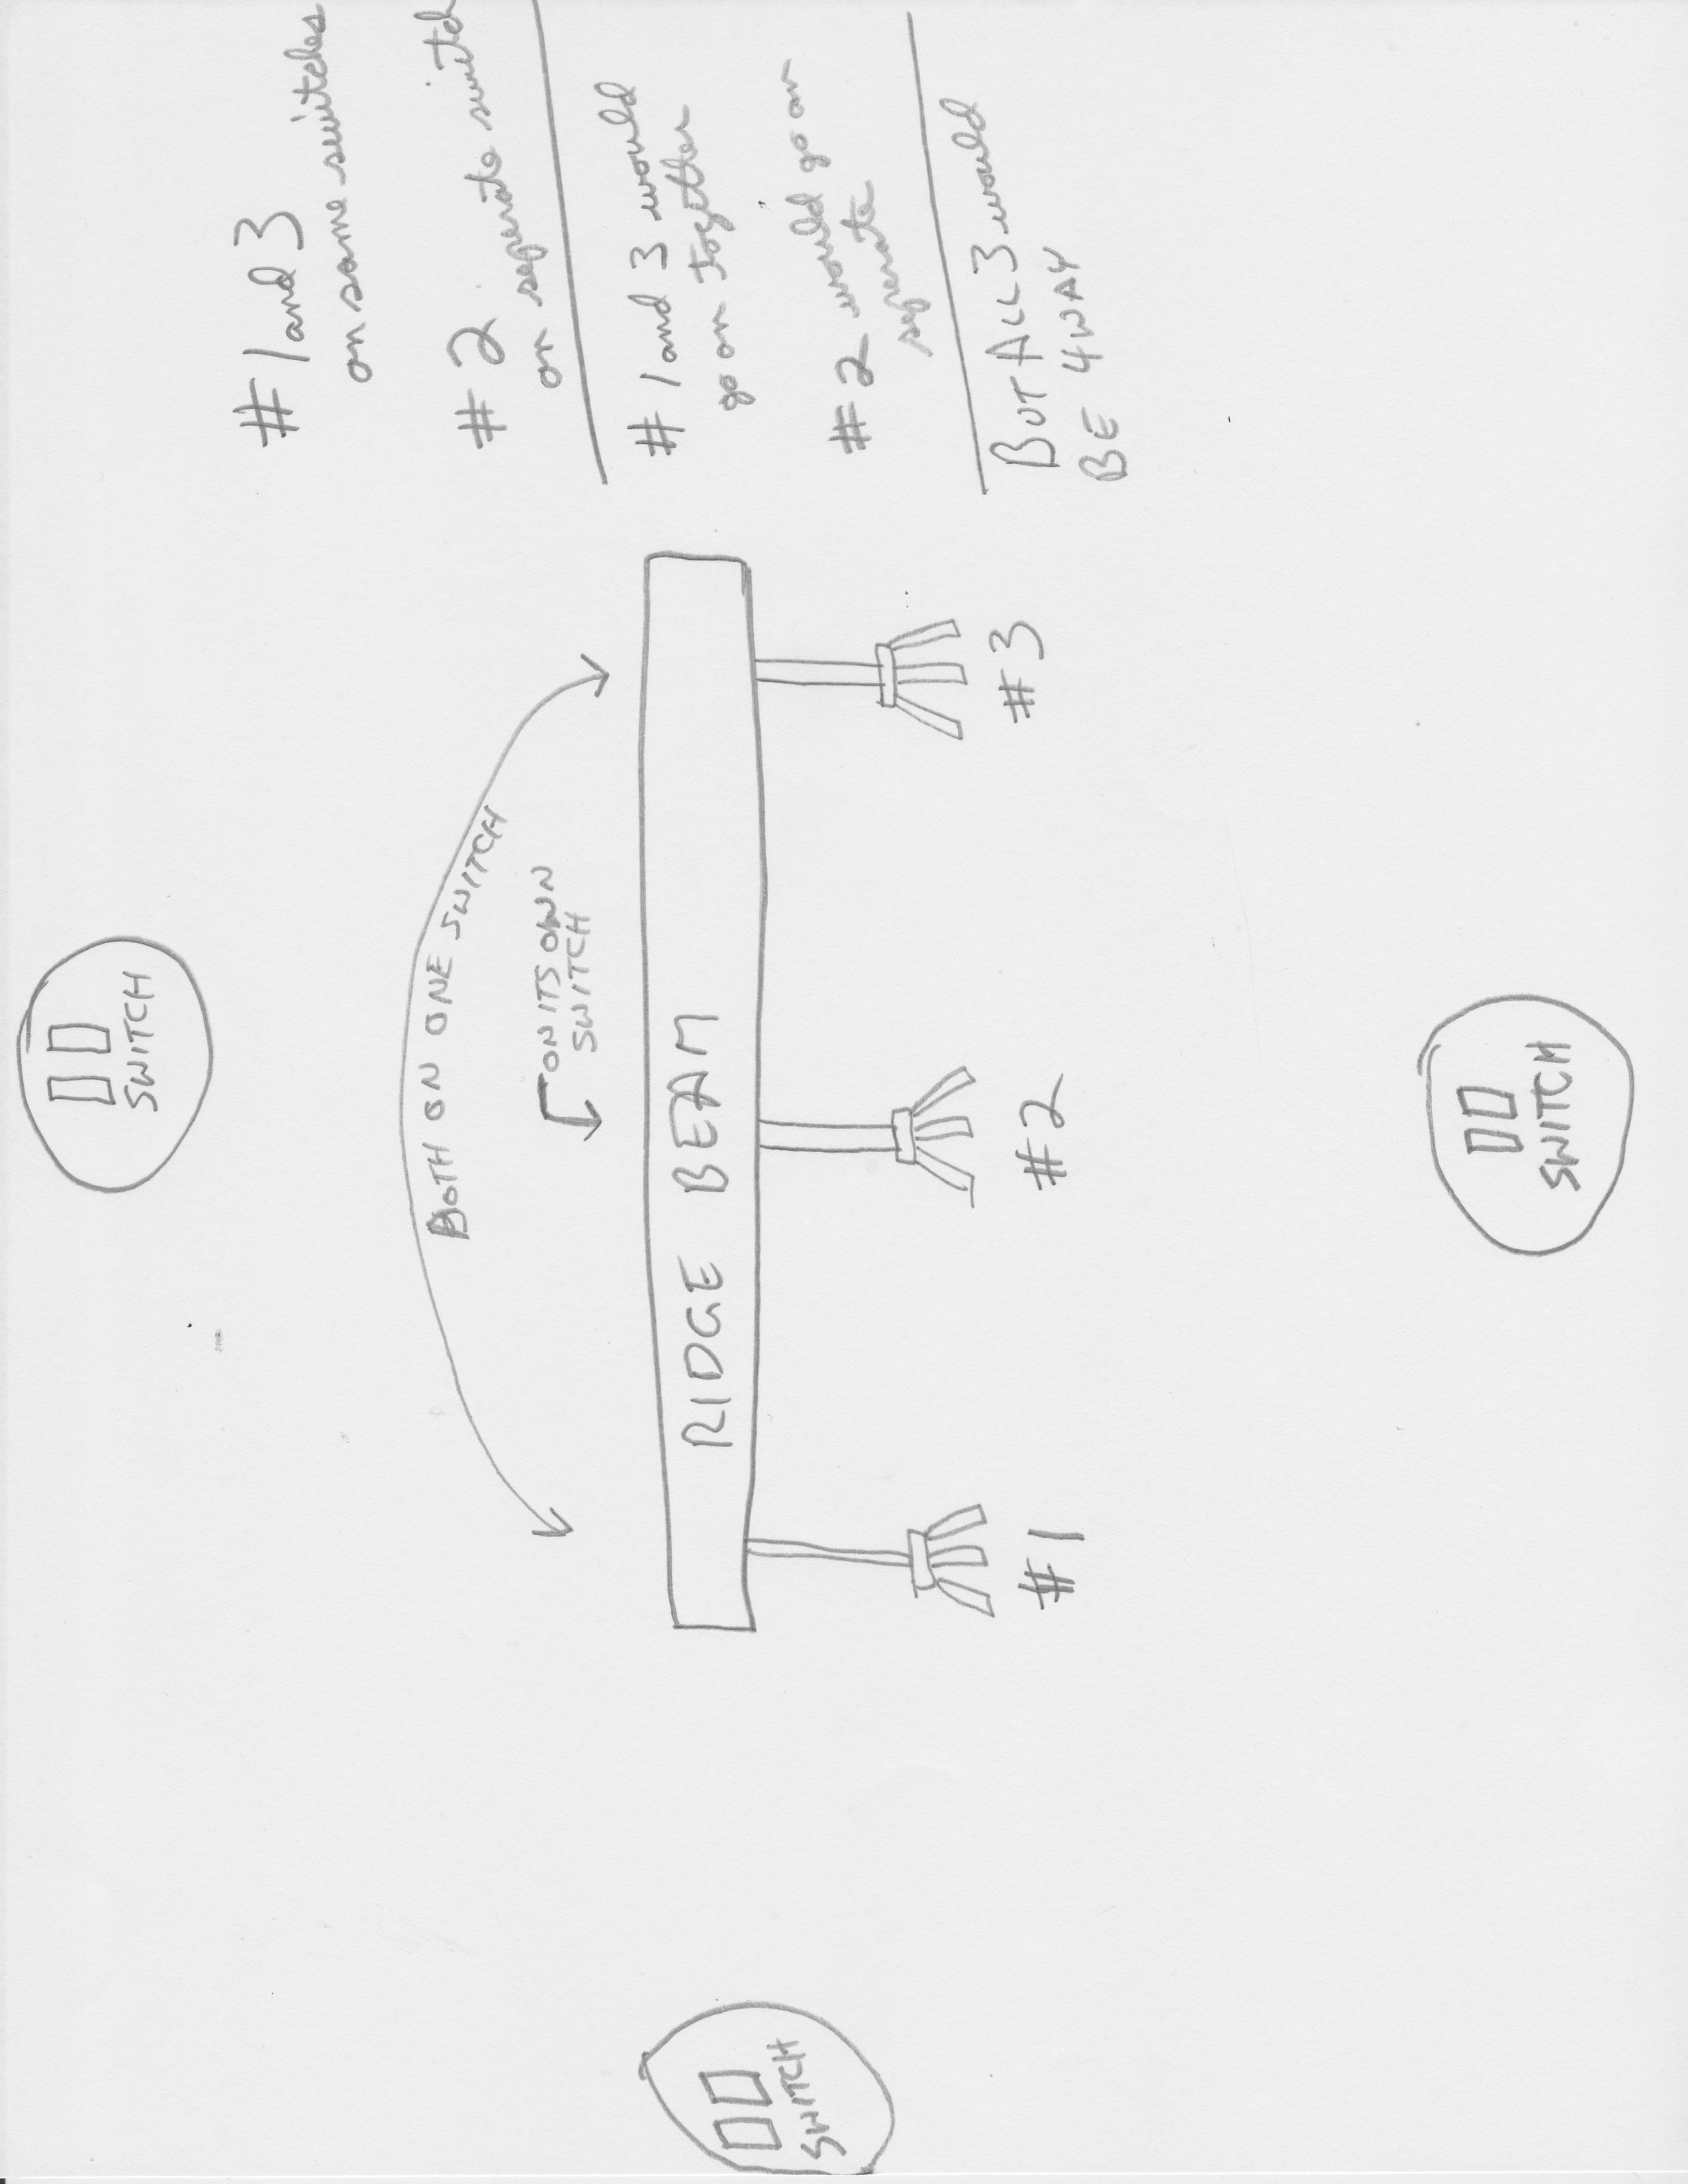 ceiling fan with light wiring diagram one switch control transformer electrical need for 4 way to multiple drawing of fixture and layout